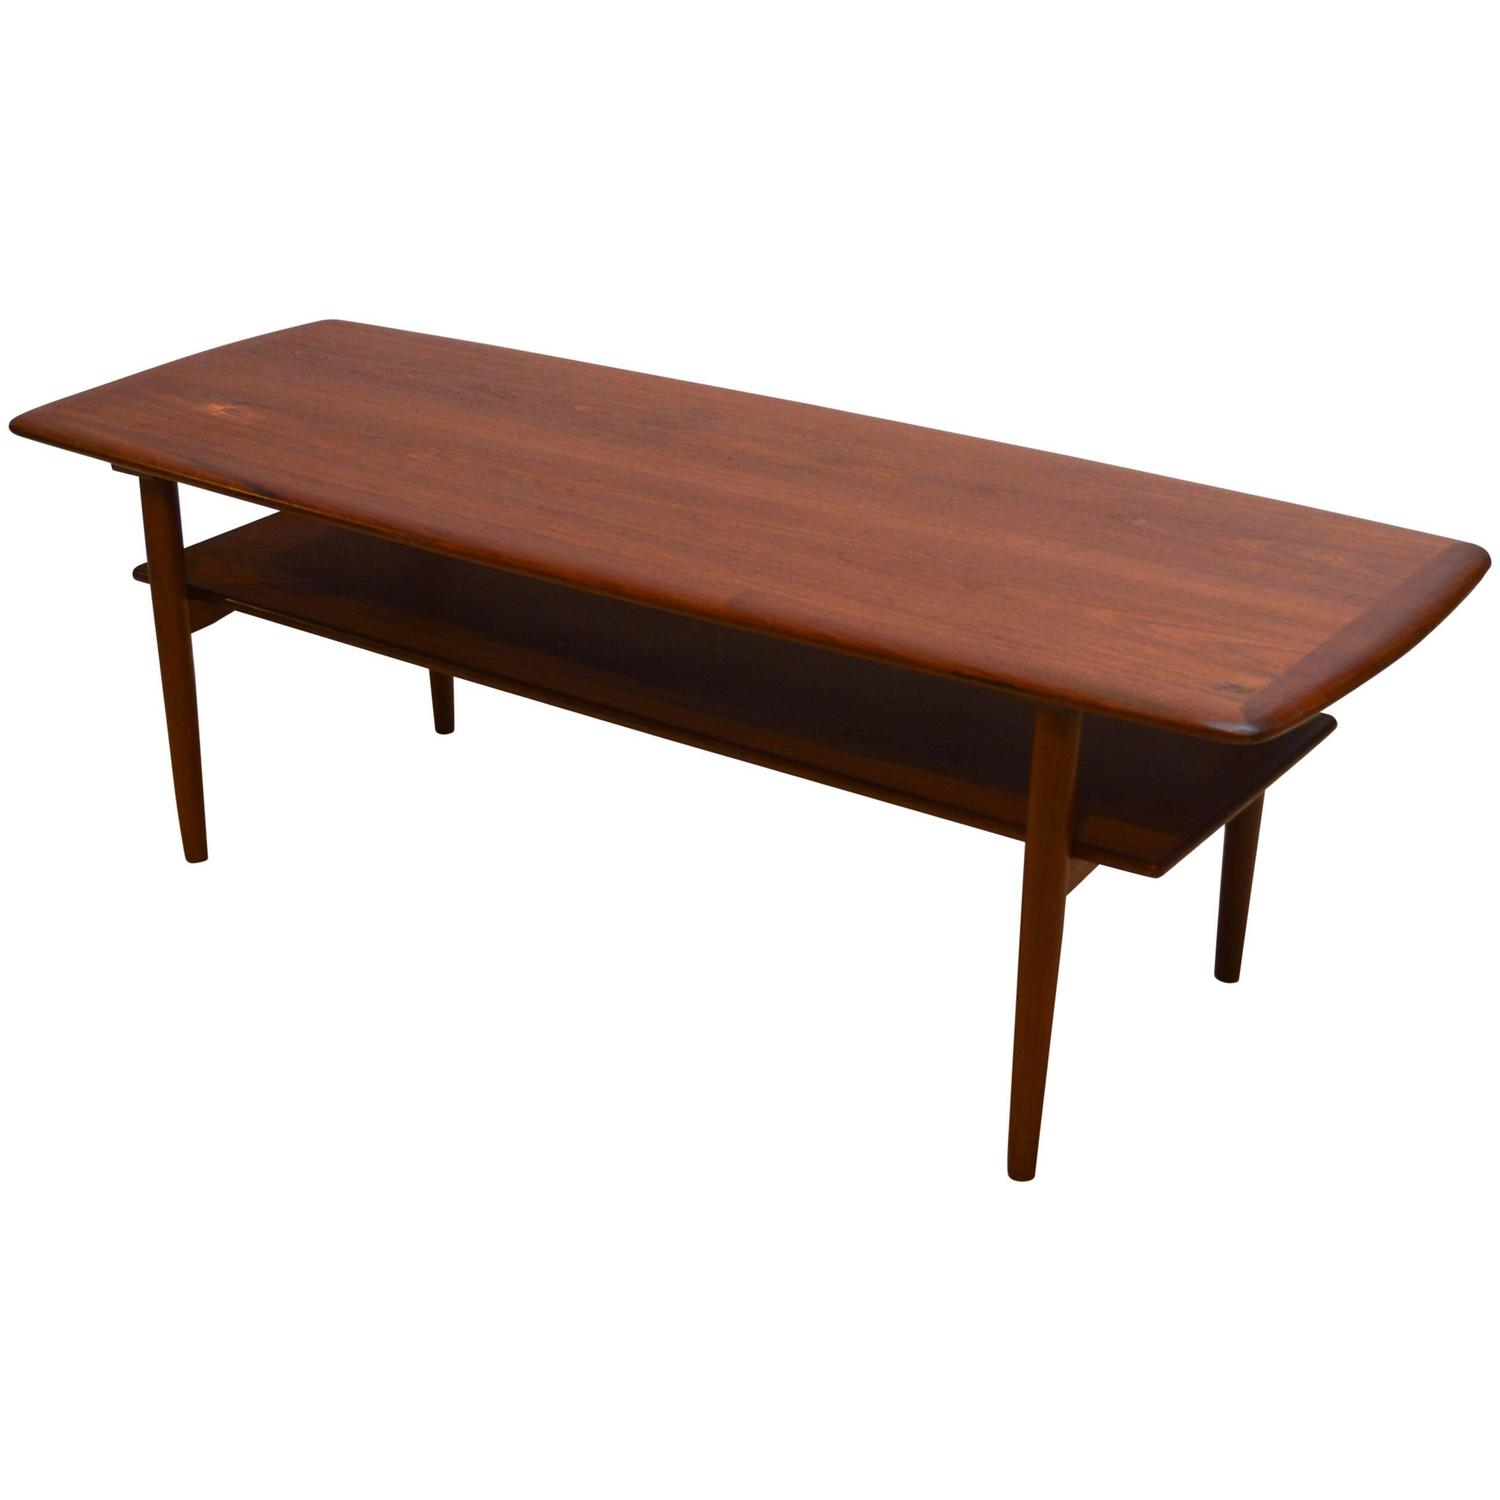 Teak Burger Coffee Table: Danish Modern Teak Coffee Table With Shelf At 1stdibs